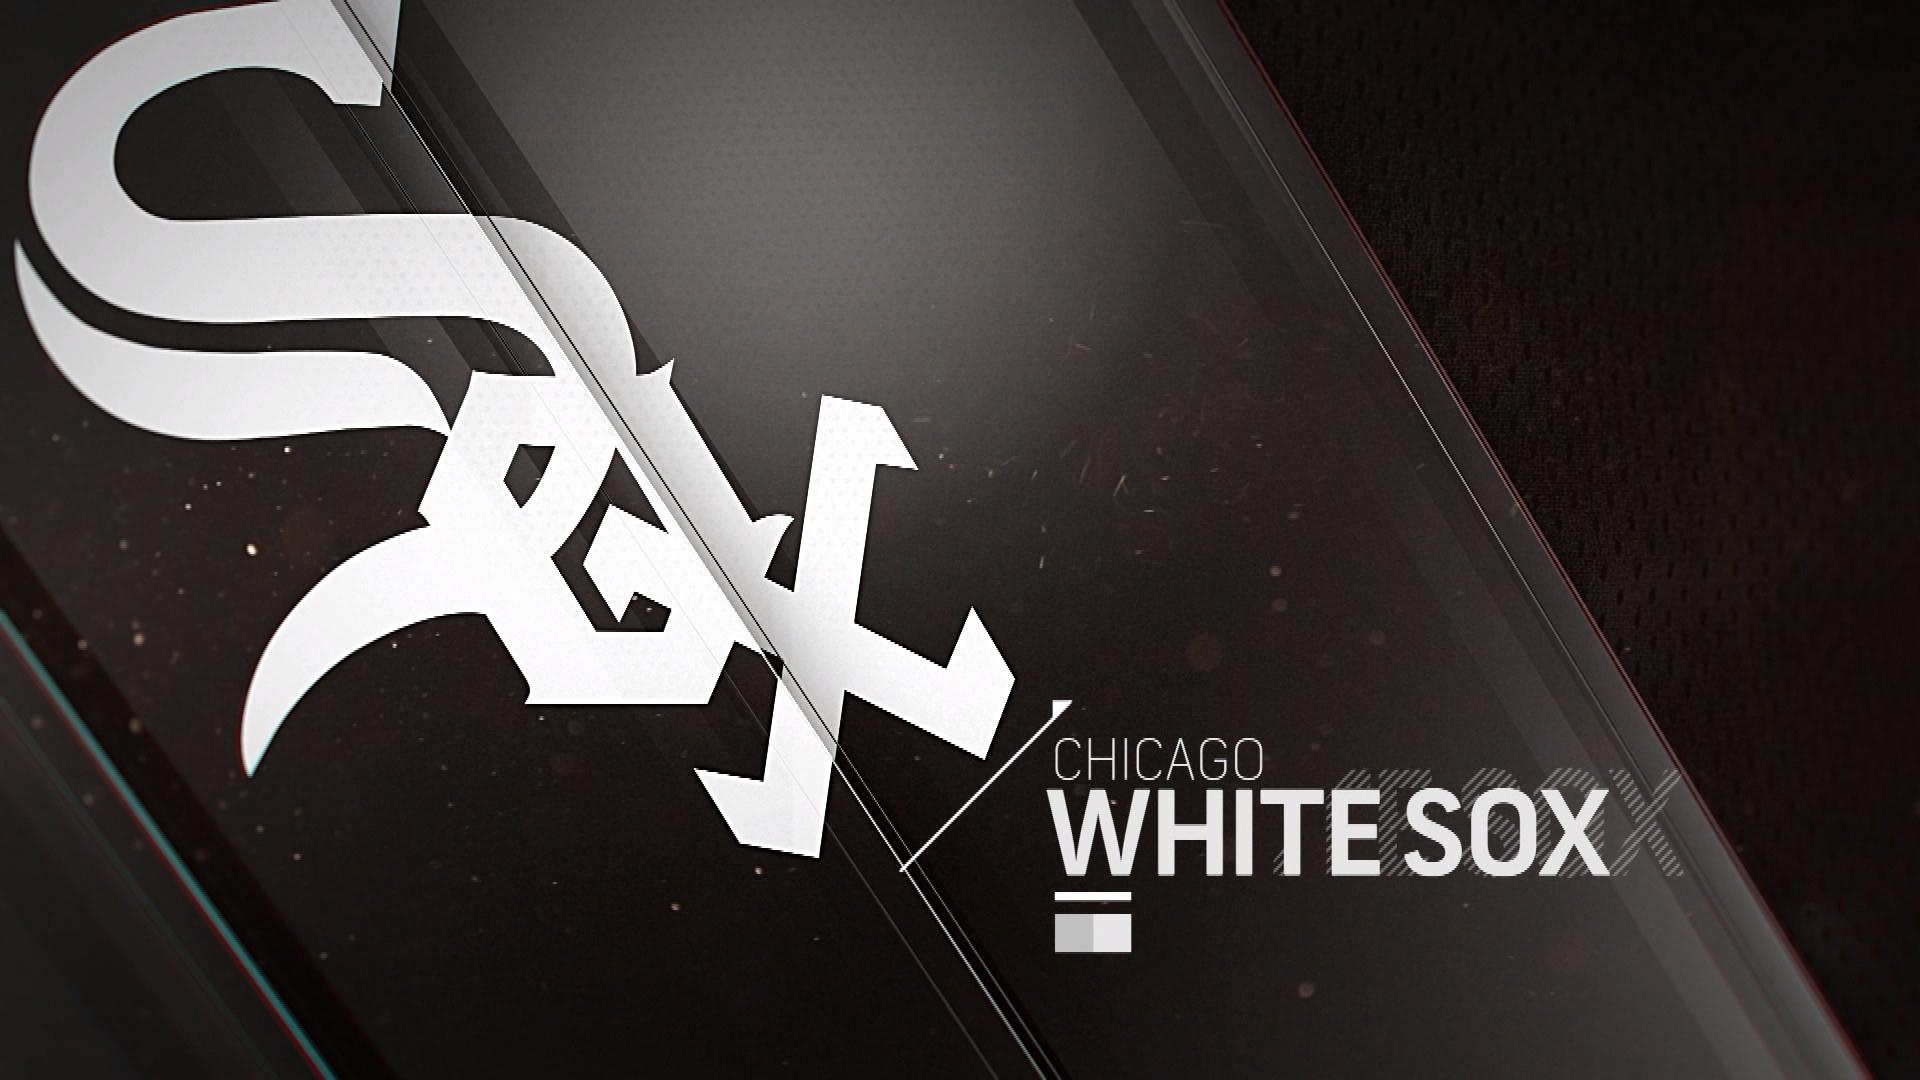 Chicago White Sox Wallpapers and Background Images   stmednet 1920x1080